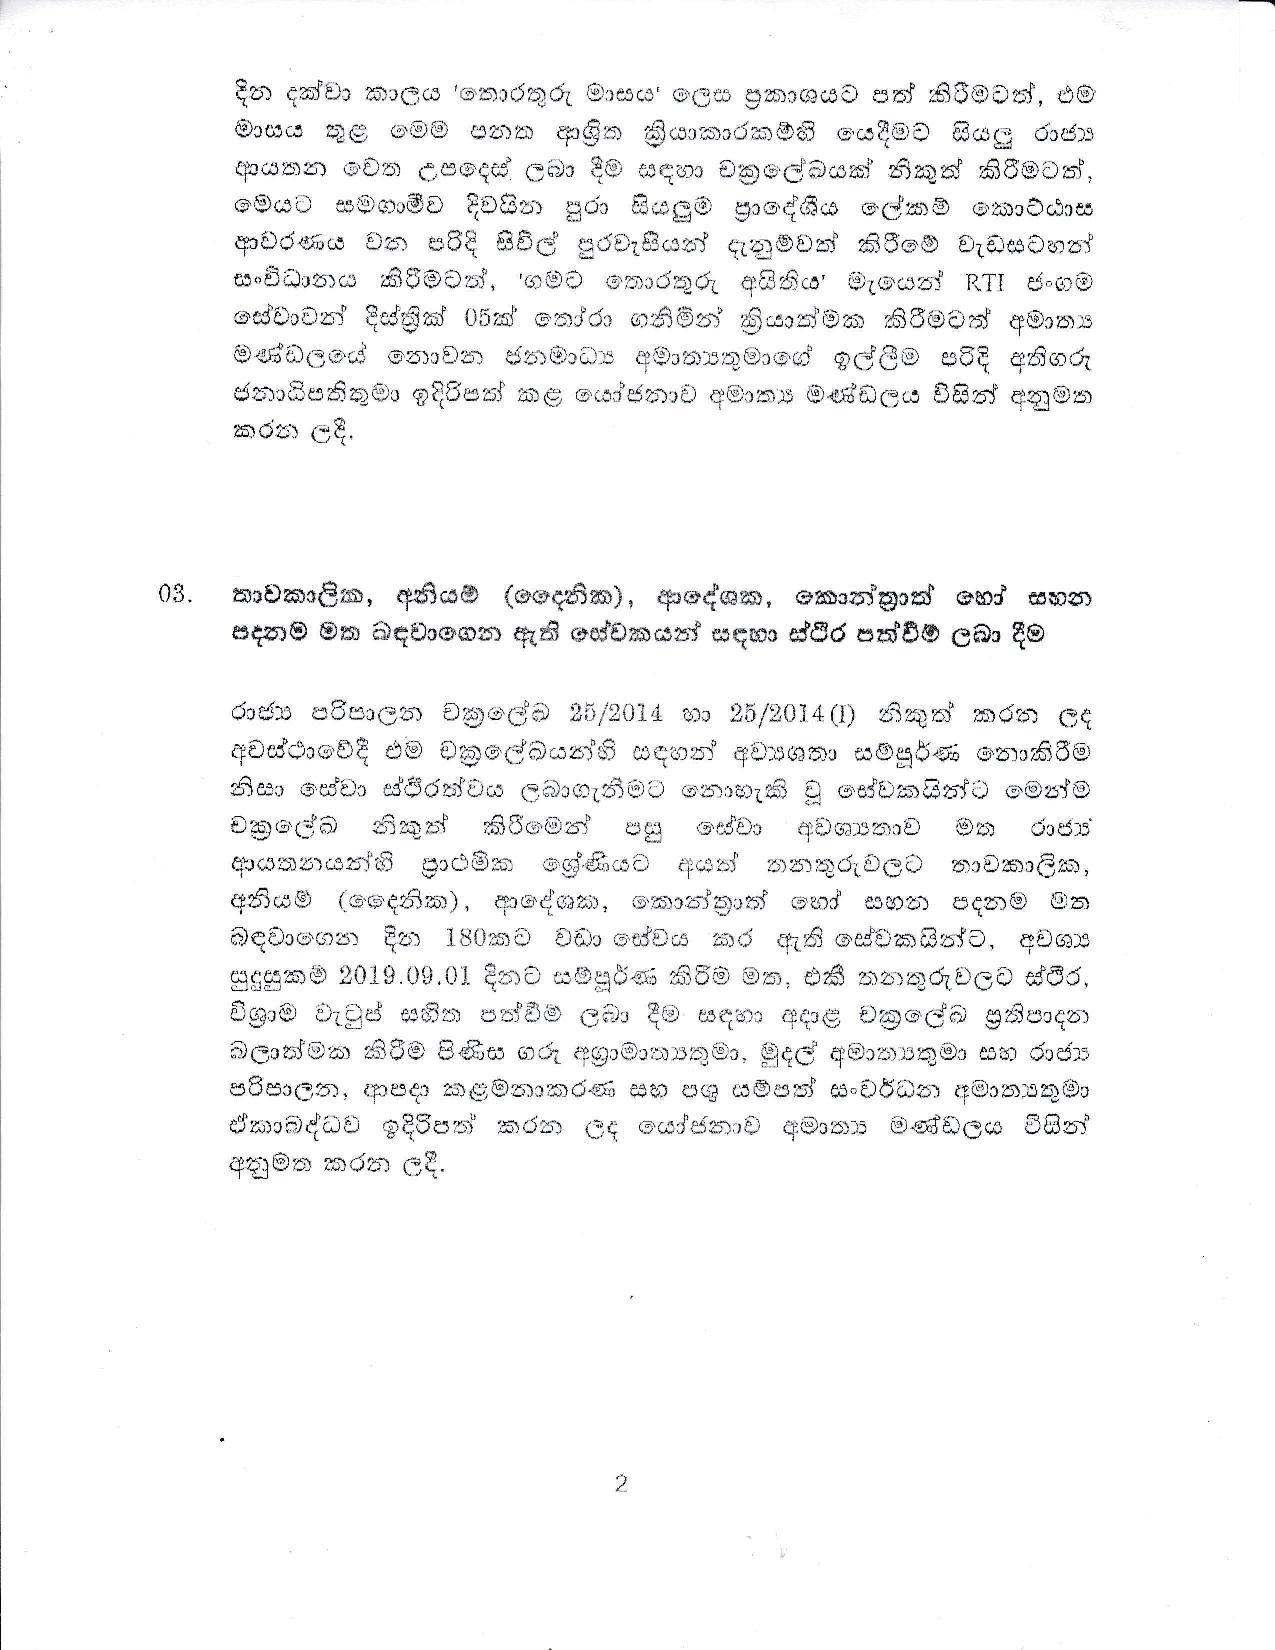 Cabinet Decision on 17.09.2019 Full document page 002